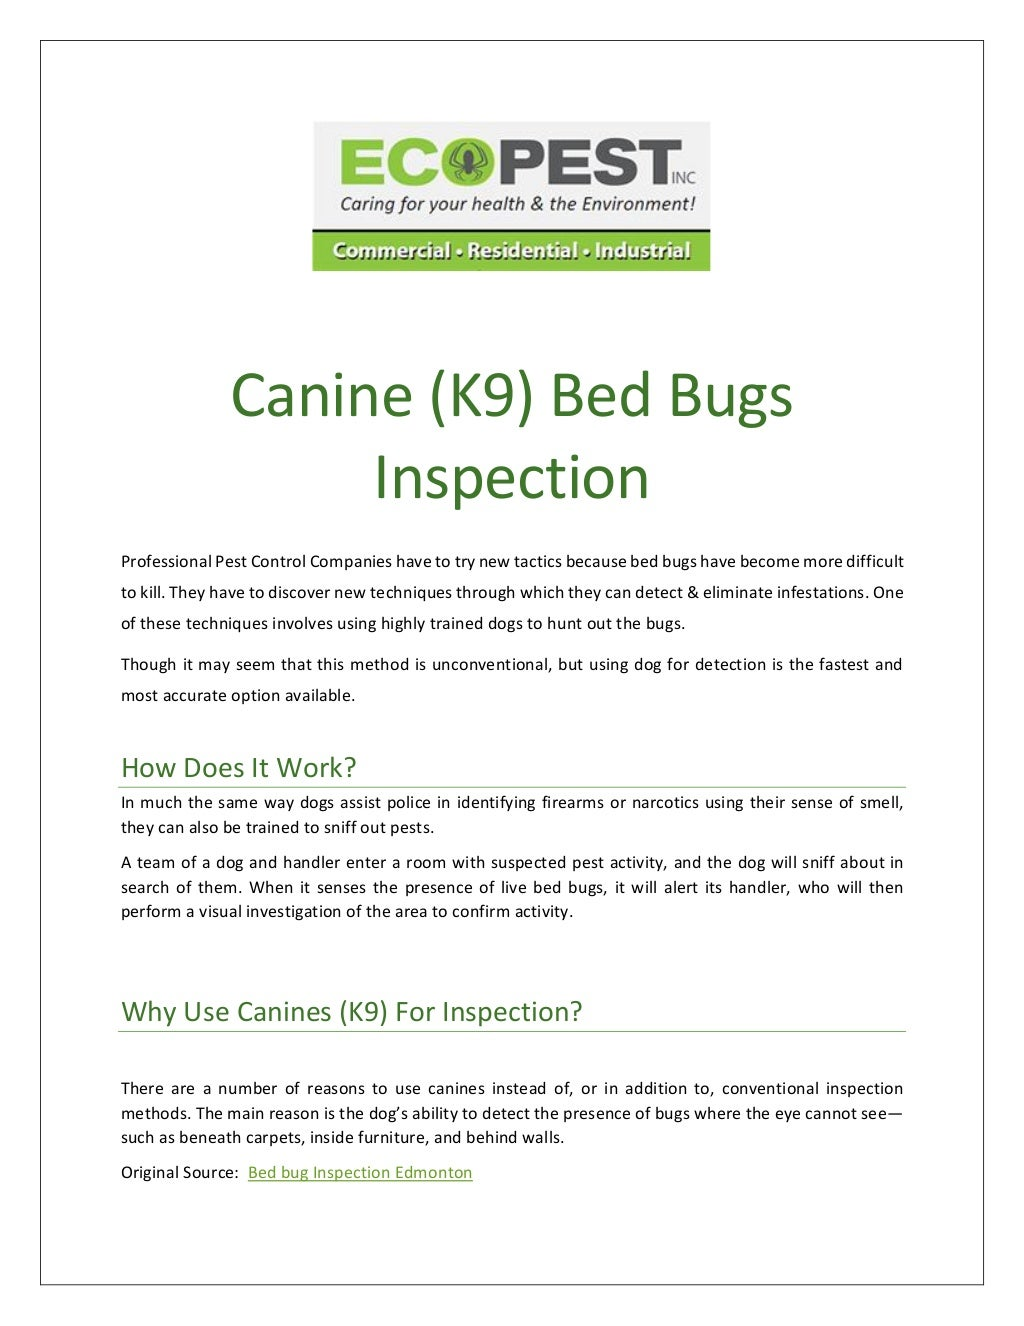 Say Goodbye to Bed Bugs: Get Canine (K9) Bed Bug Inspection From Ecopest